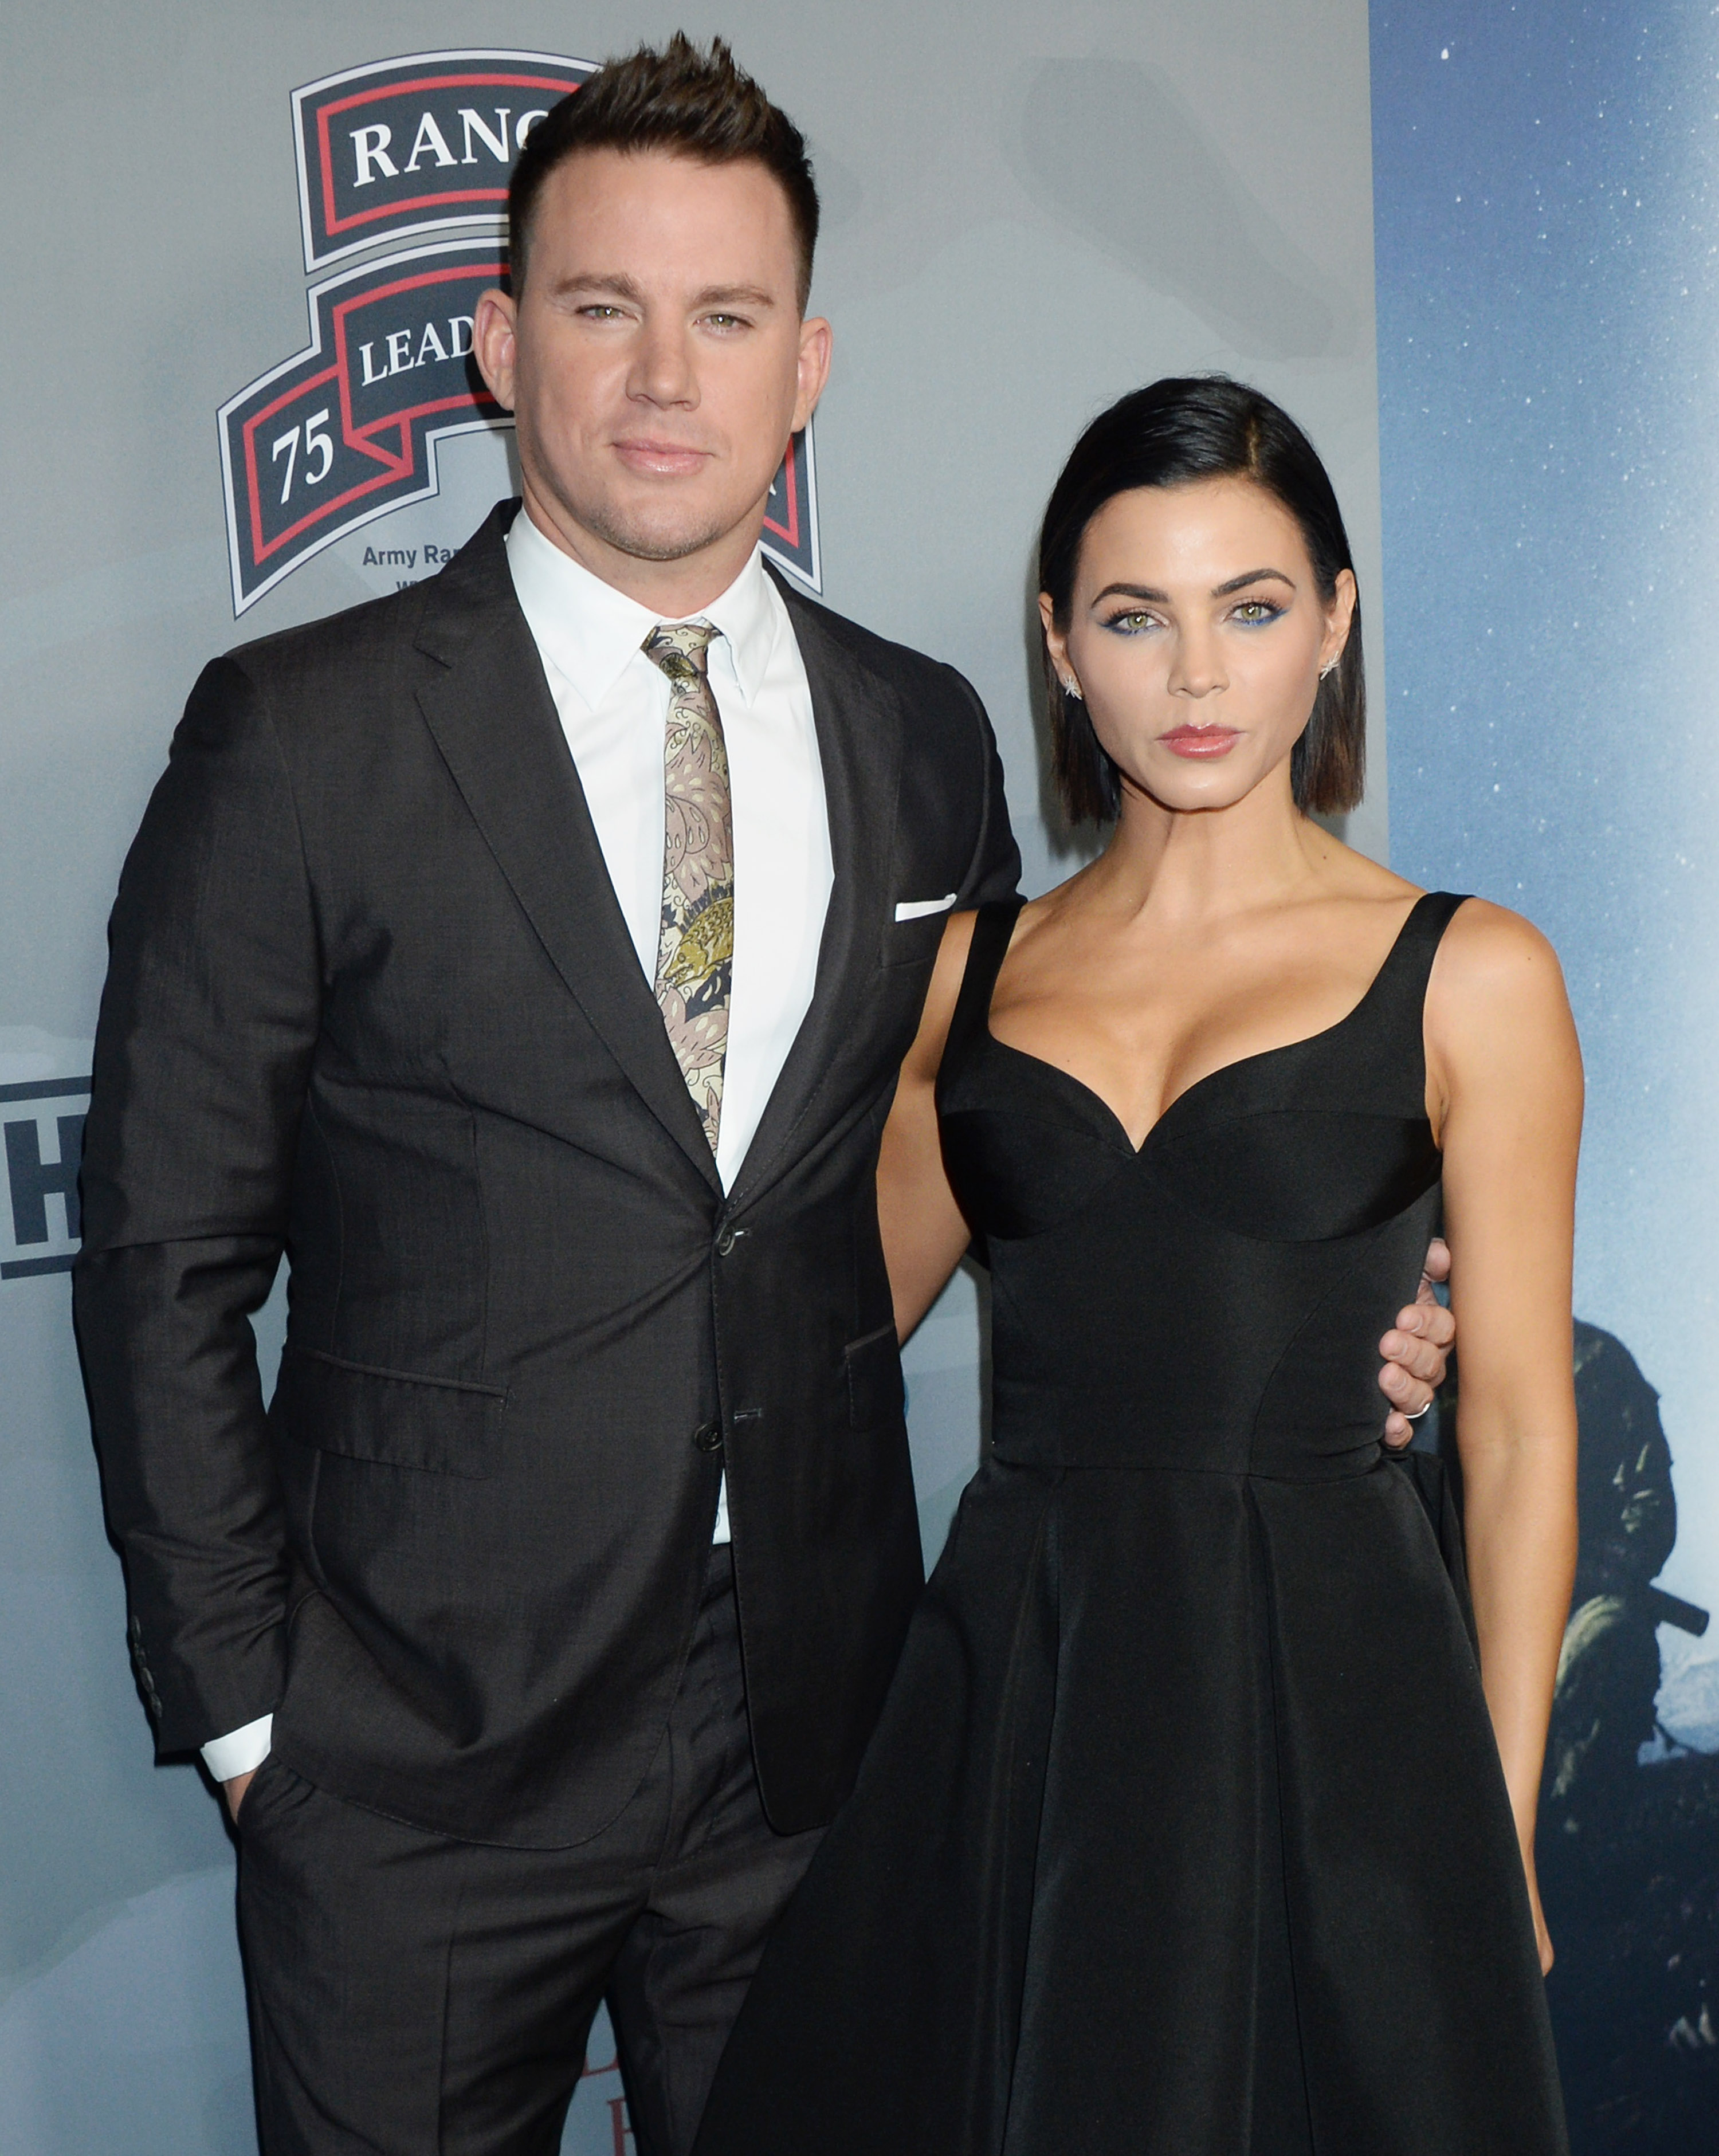 Jenna Dewan Admits She Was 'Gutted' After Divorce: 'I Didn't Know Life Without Chan'